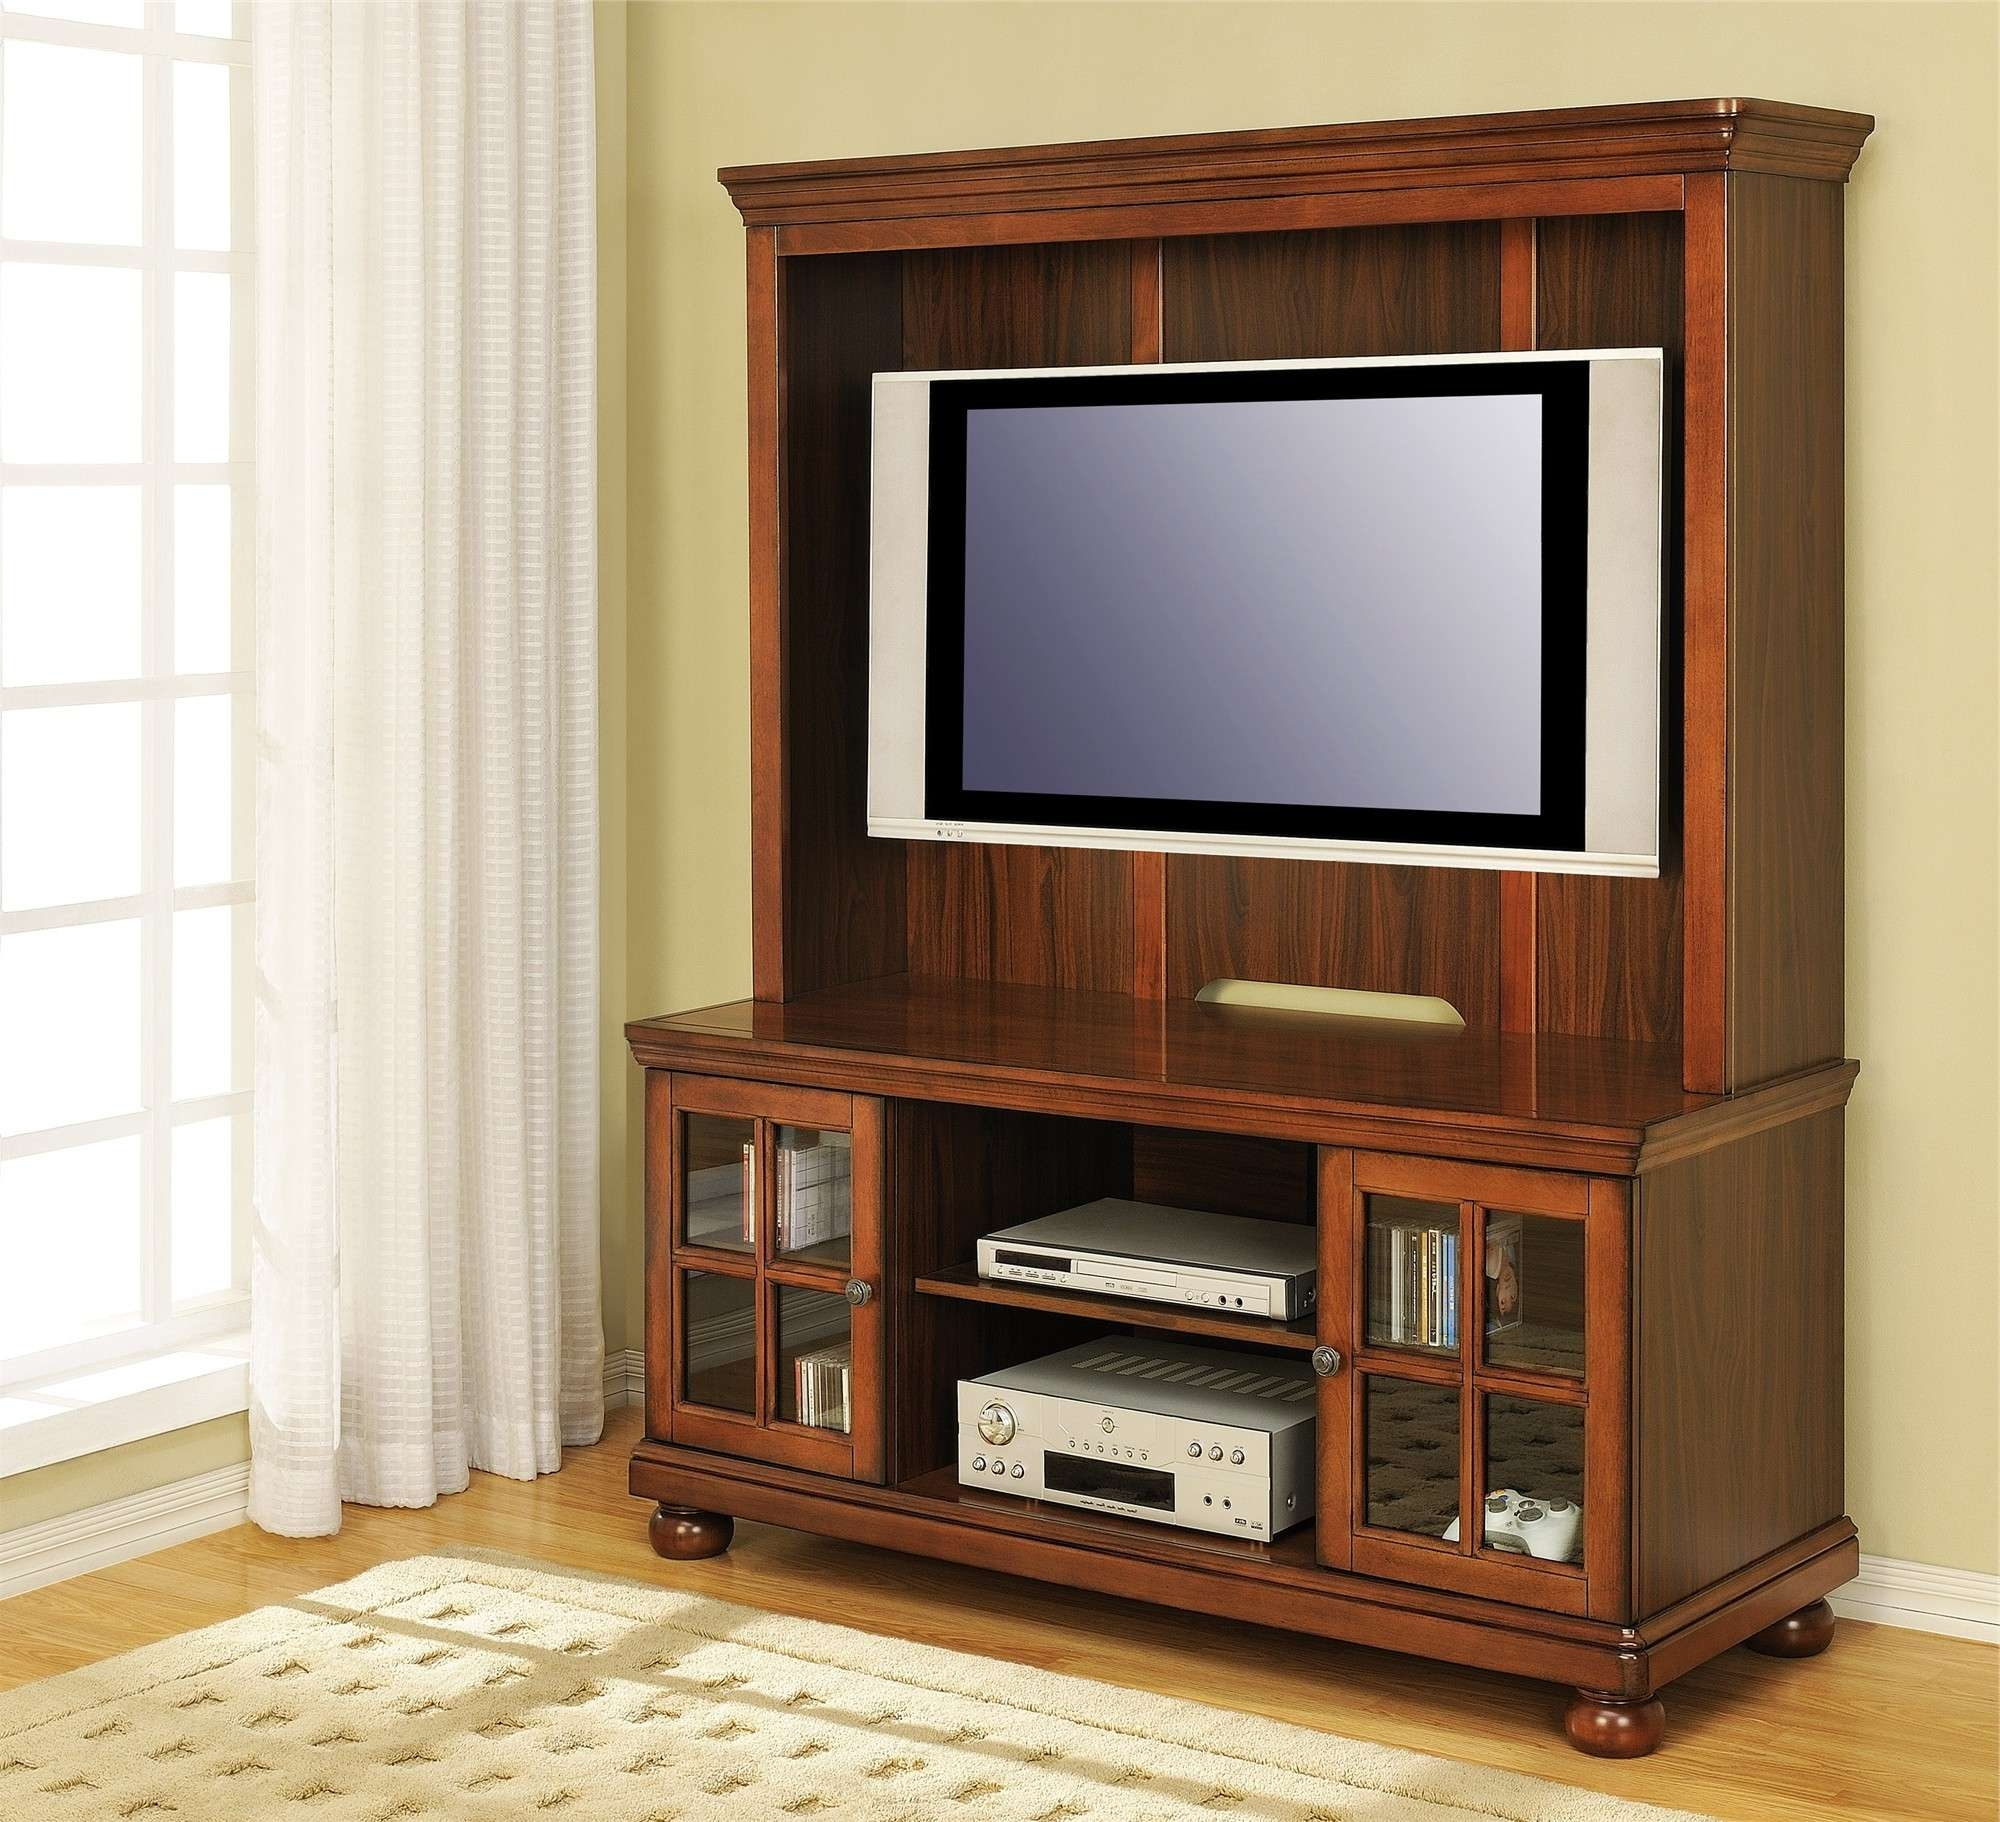 Wood Tv Cabinets With Glass Doors | Cabinet Doors And File Cabinets For Wooden Tv Cabinets With Glass Doors (View 18 of 20)